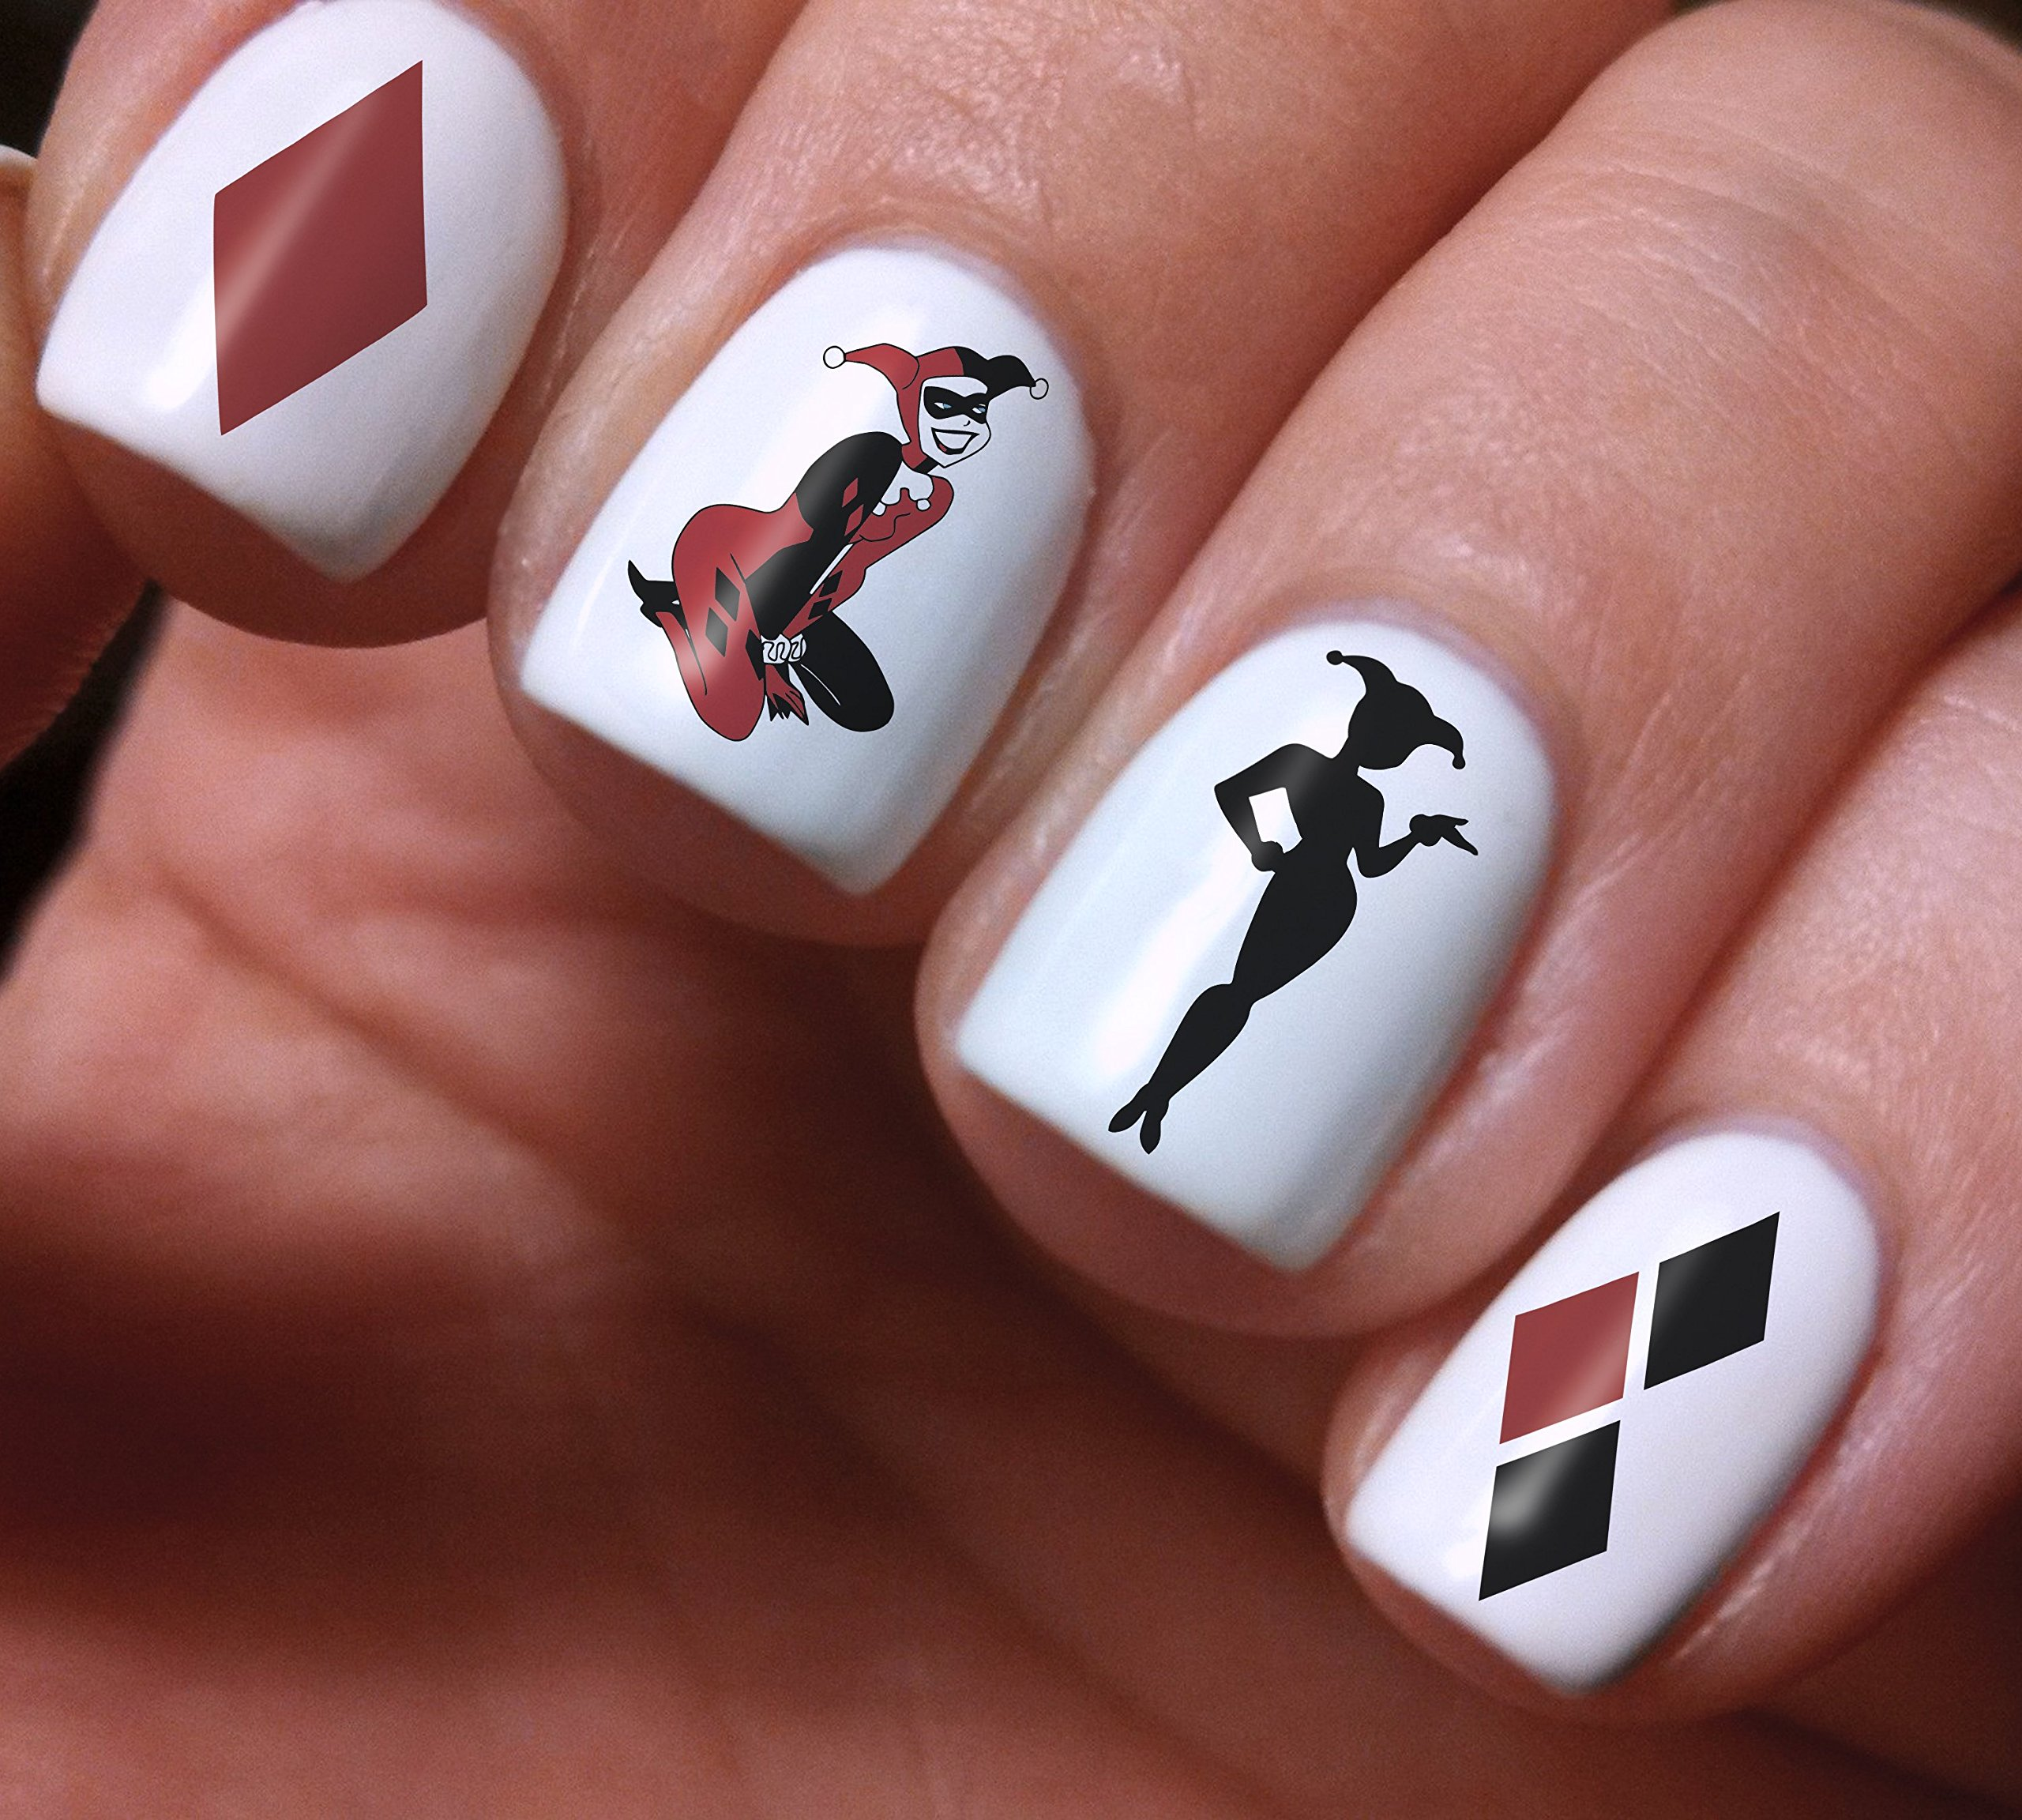 Amazon.com: Harley Quinn nail decals nail set for manicure ...